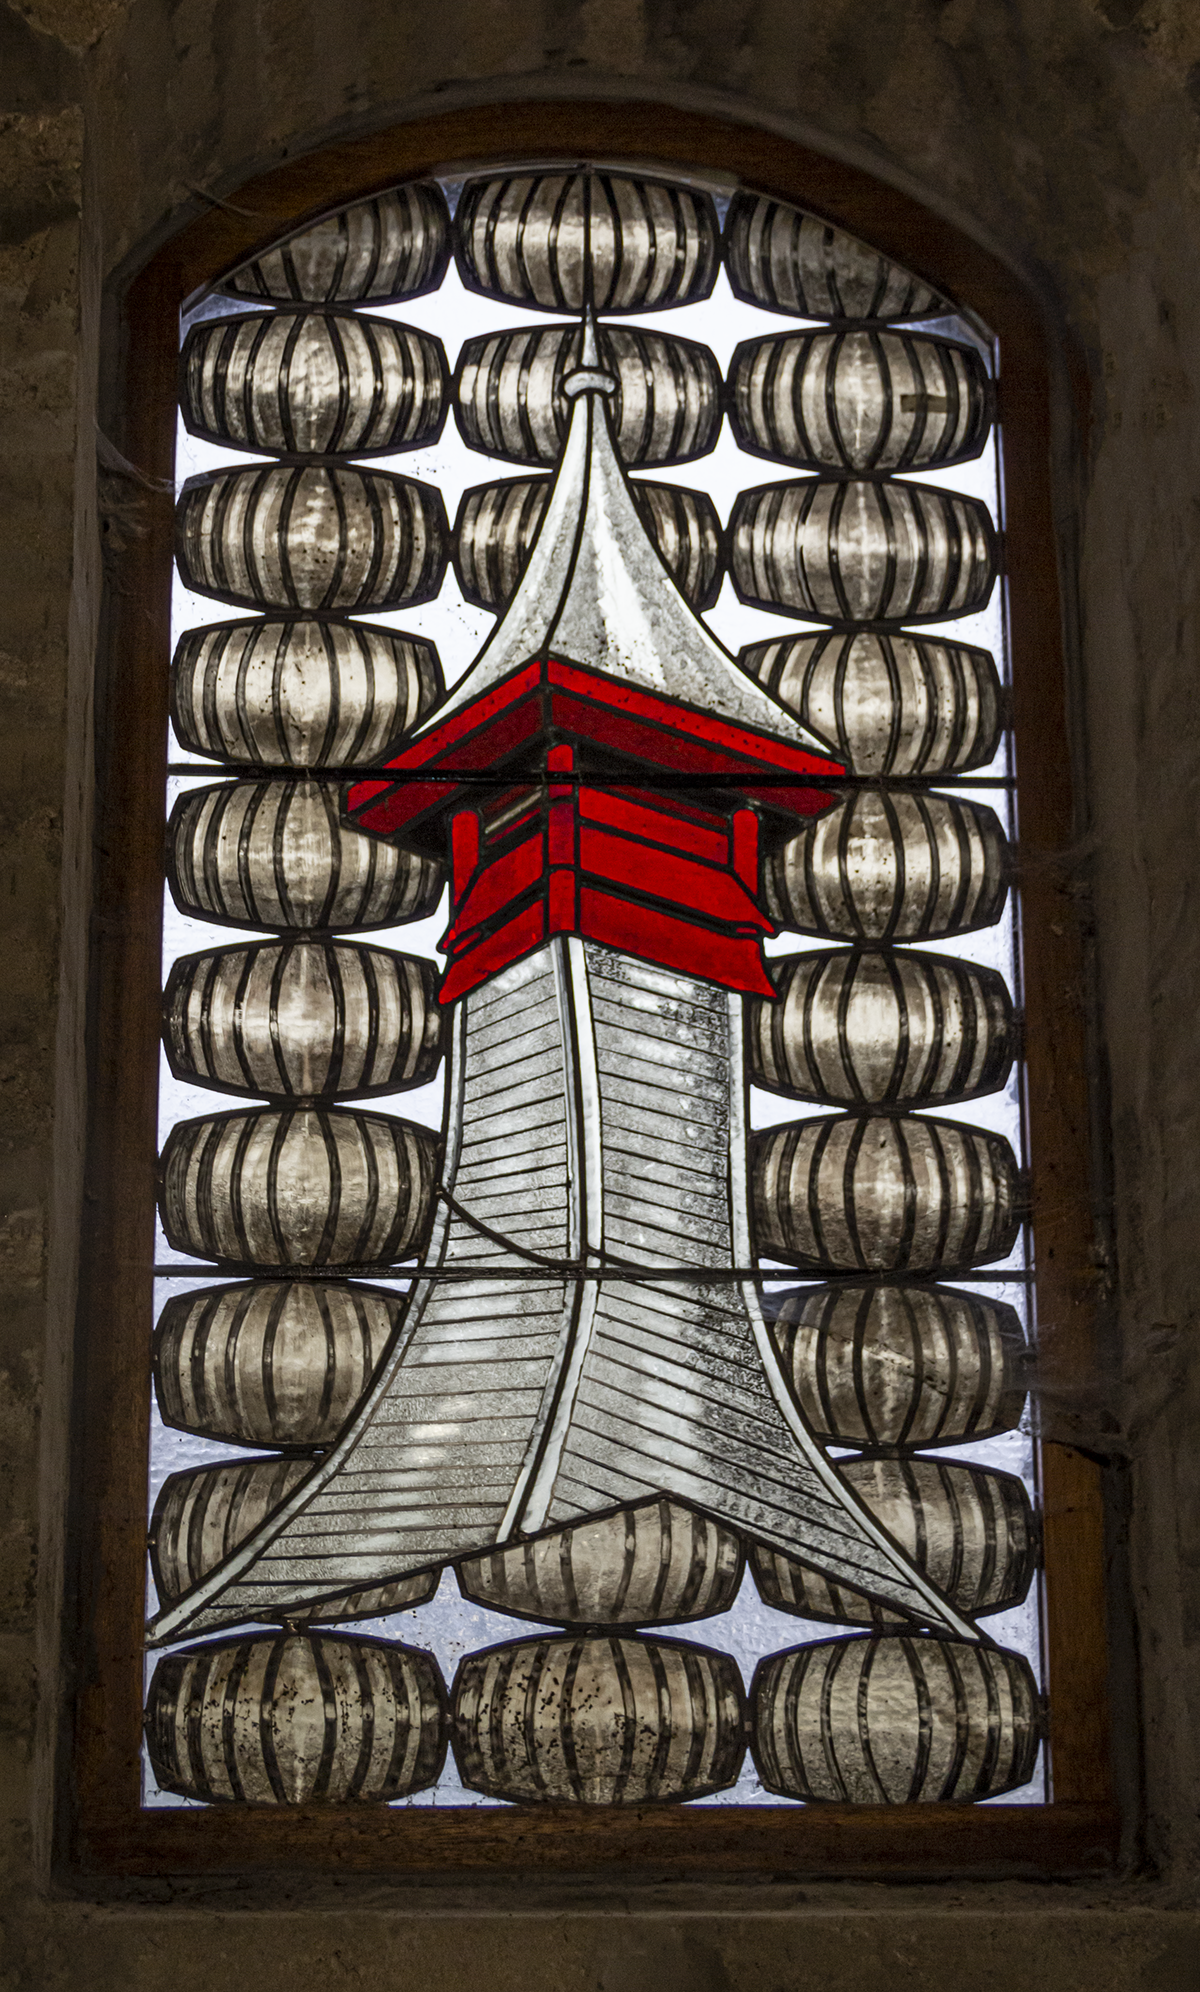 More distilleries need  to have stained glass windows in their warehouses like this one at Scotland's Knockdhu (anCnoc) Distillery!